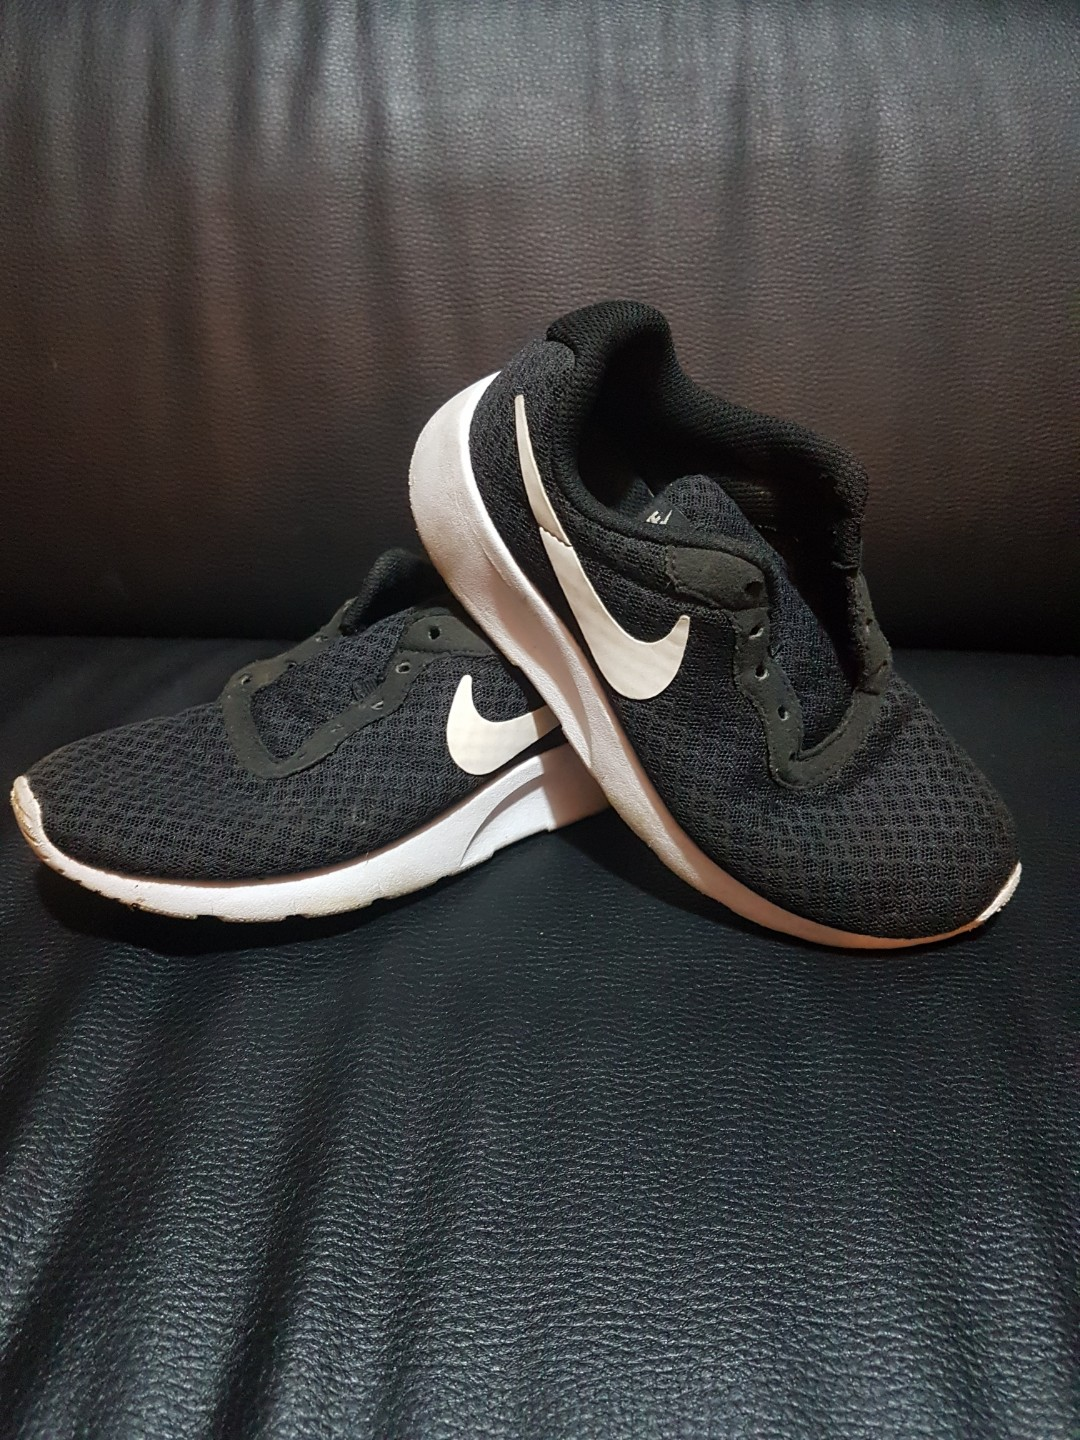 competitive price 2a2d0 72635 Nike Roshe sport shoes for boys/girls.